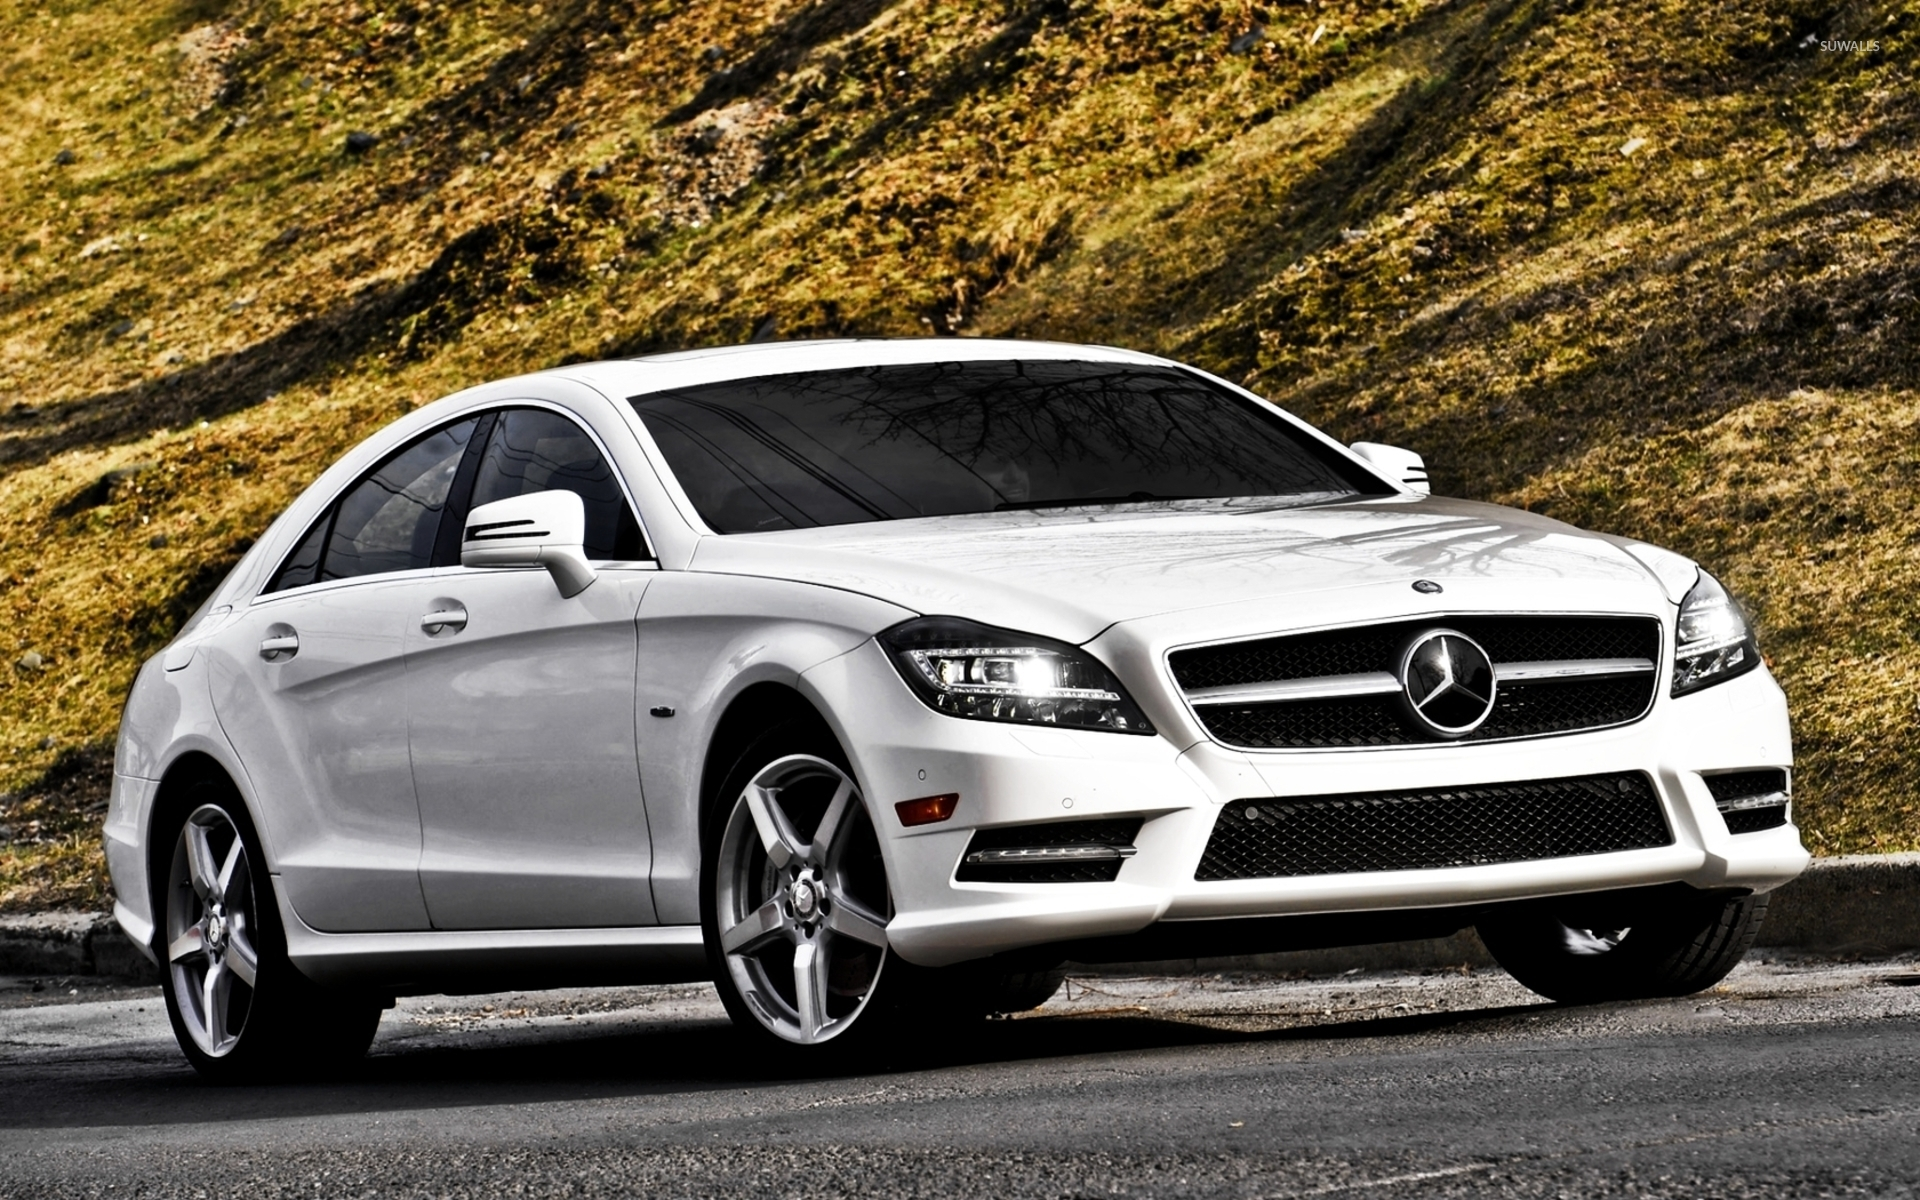 Mercedes benz cls550 wallpaper car wallpapers 39431 for Mercedes benz cls 550